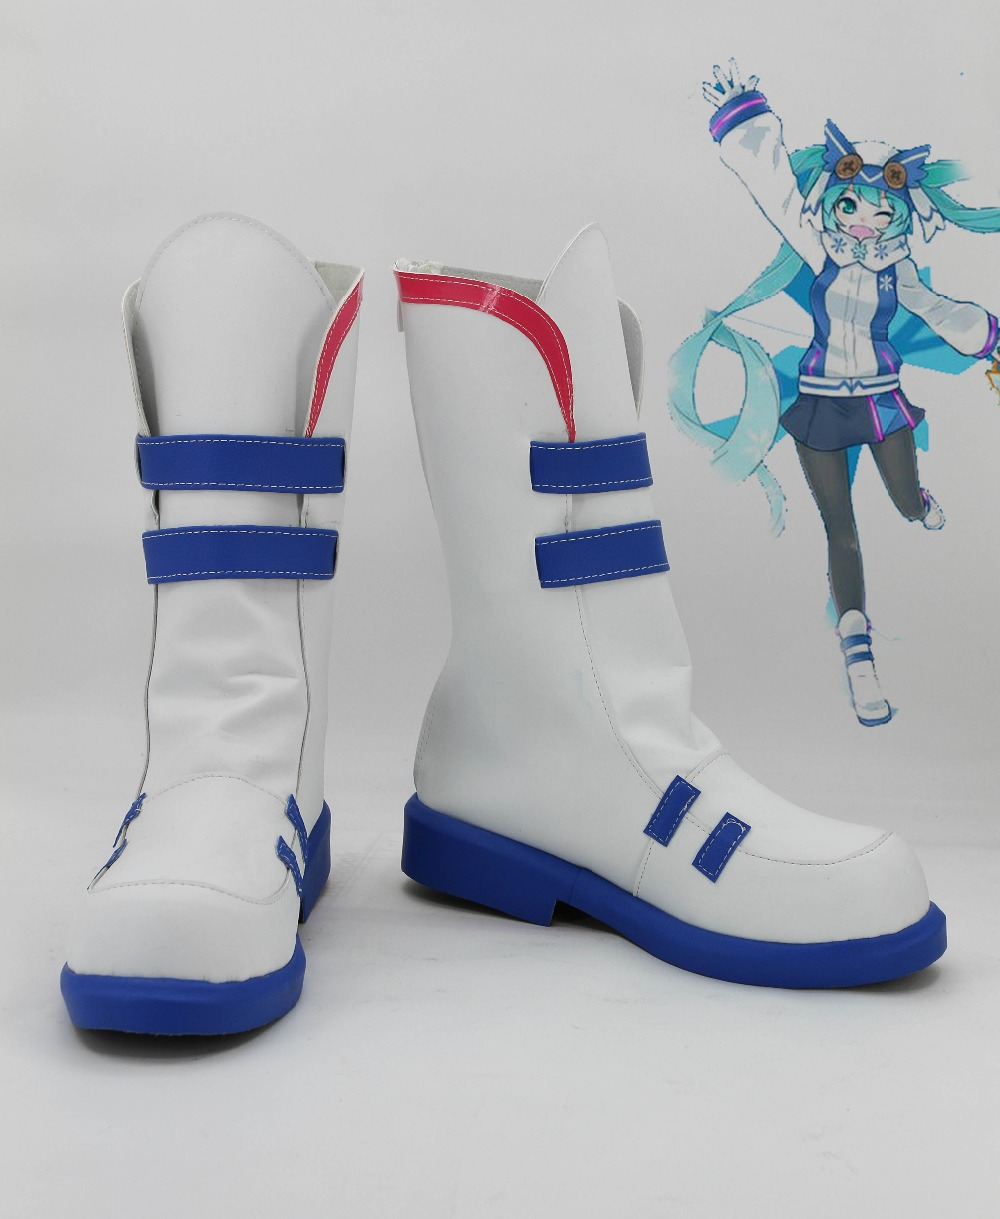 Vocaloid Hatsune Miku Miku Sportswear Uniform Cosplay Boots Shoes For Women  Girls-in Shoes from Novelty & Special Use on Aliexpress.com | Alibaba Group